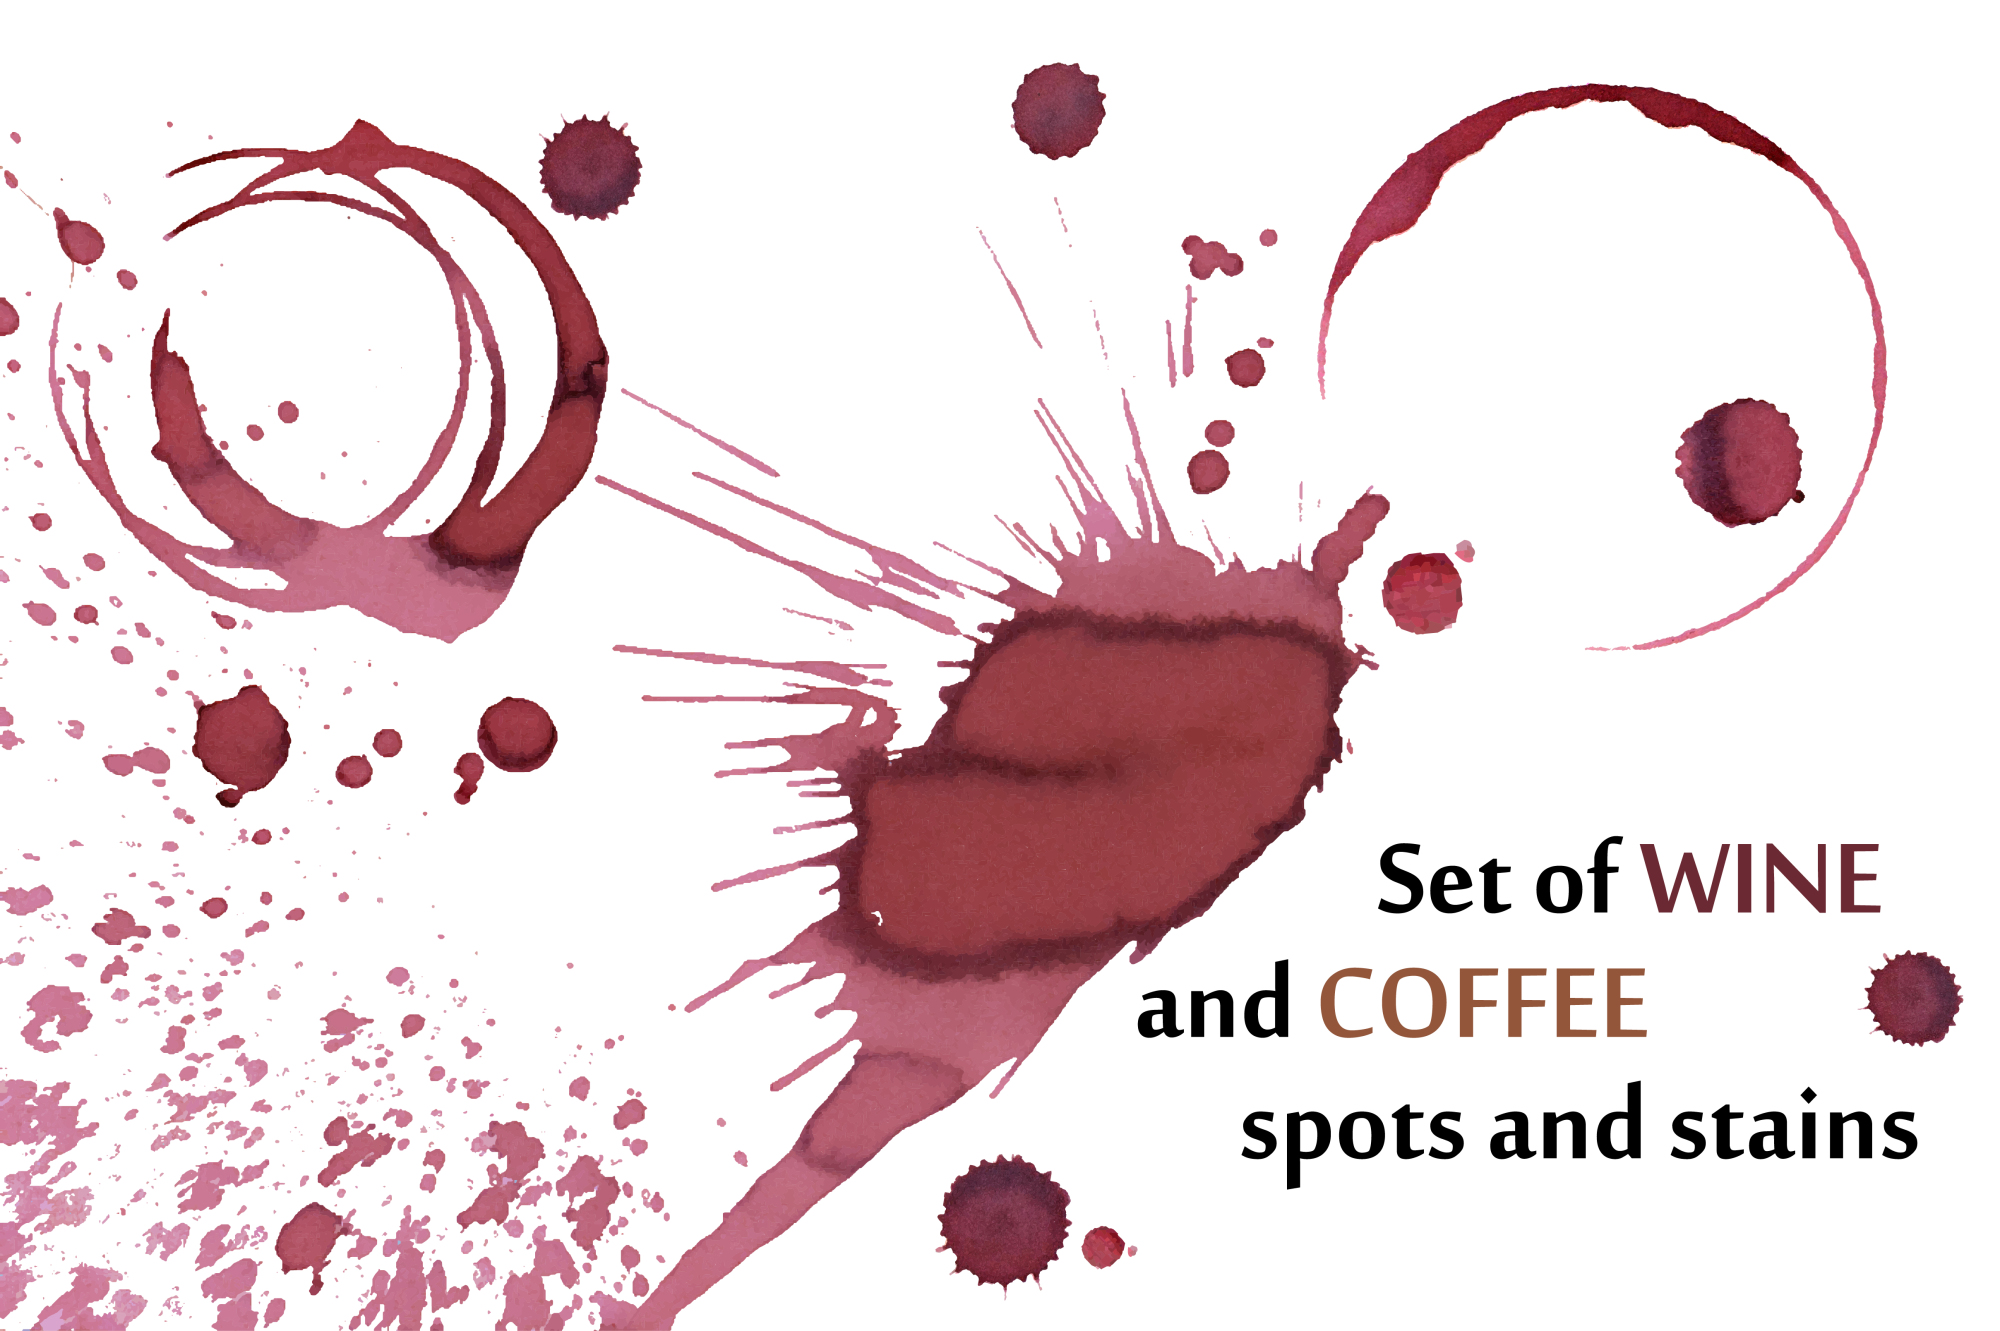 Wine and coffee stains example image 1